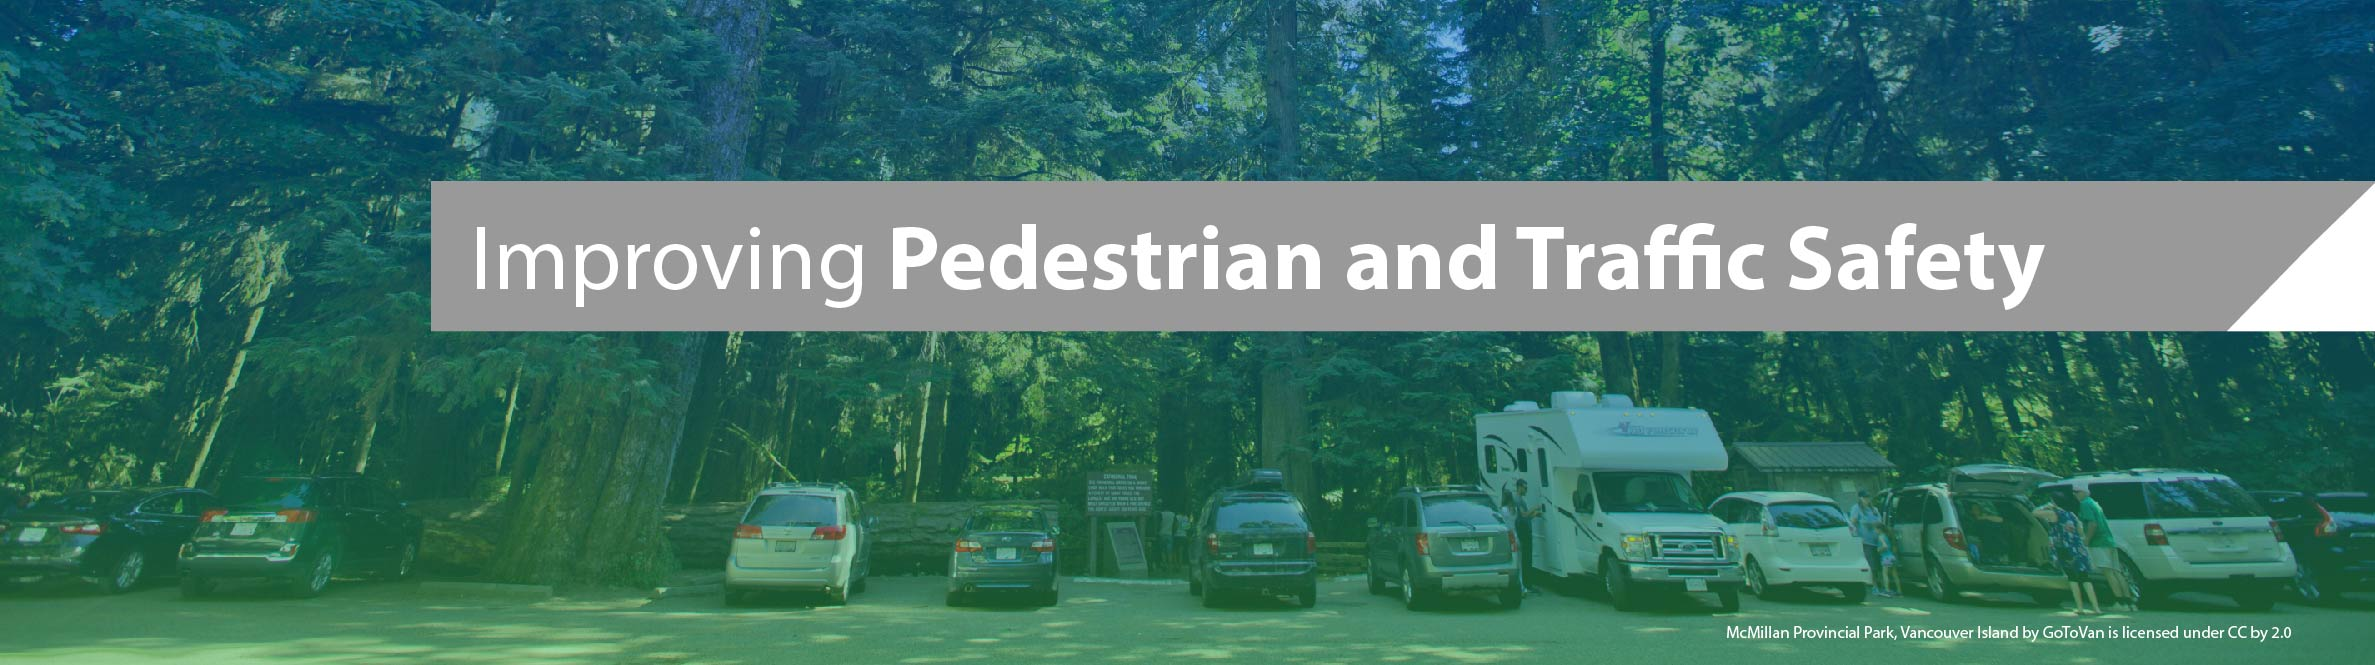 Improving Pedestrian and Traffic Safety